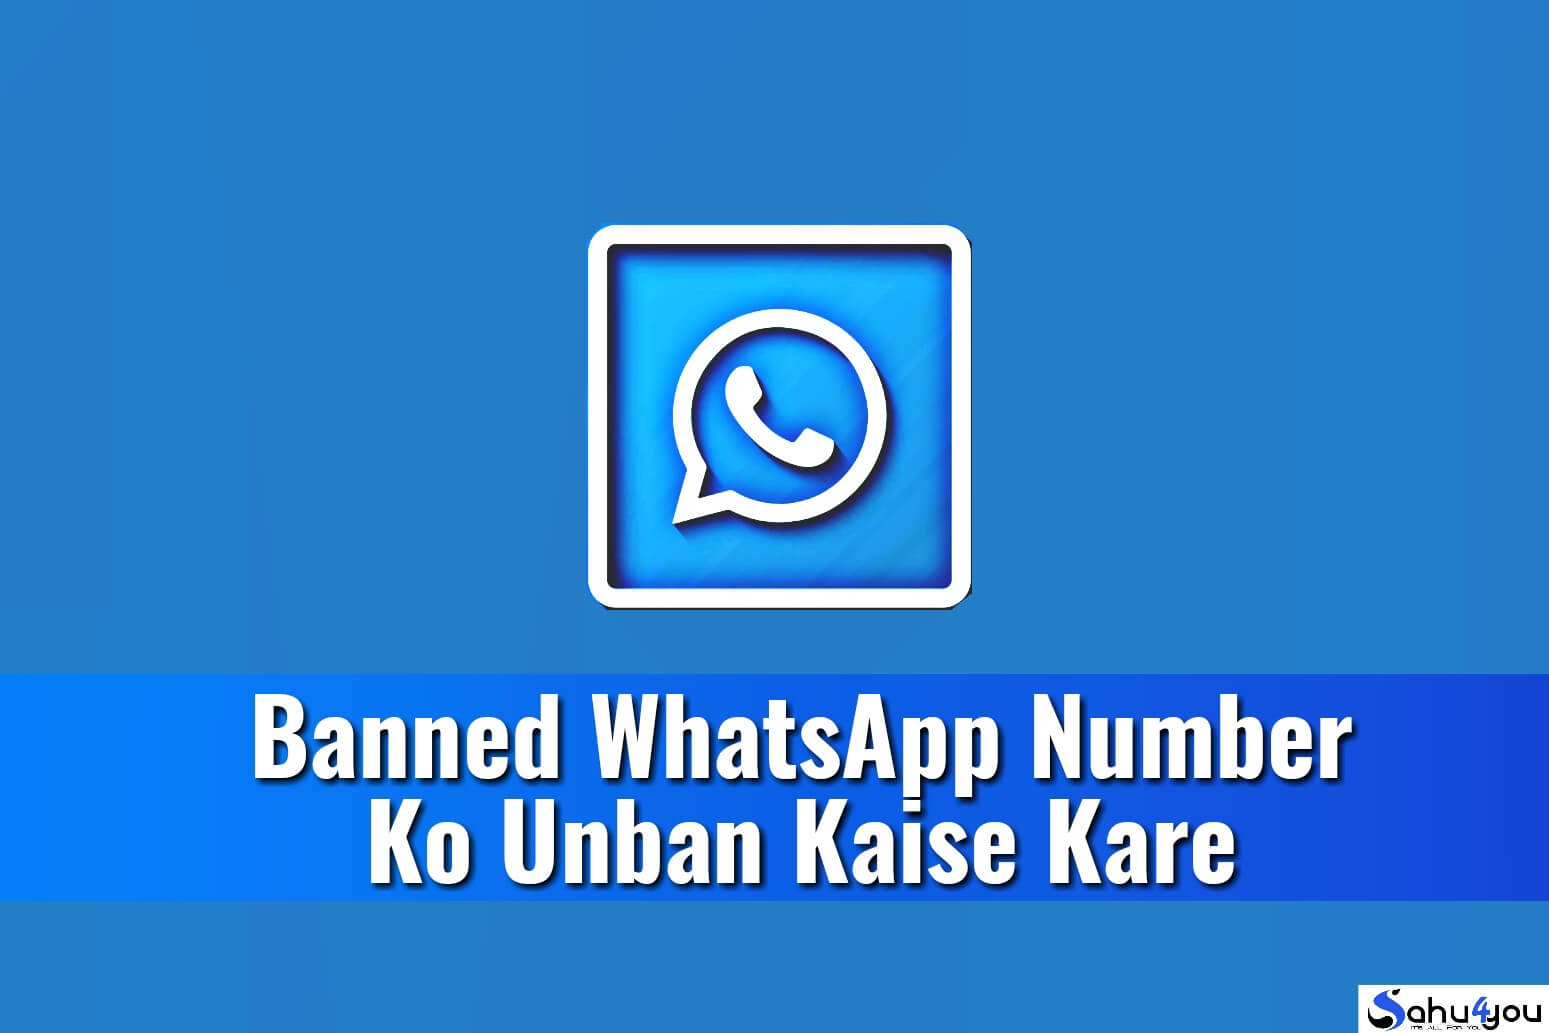 Banned WhatsApp Number Ko Unban Kaise Kare